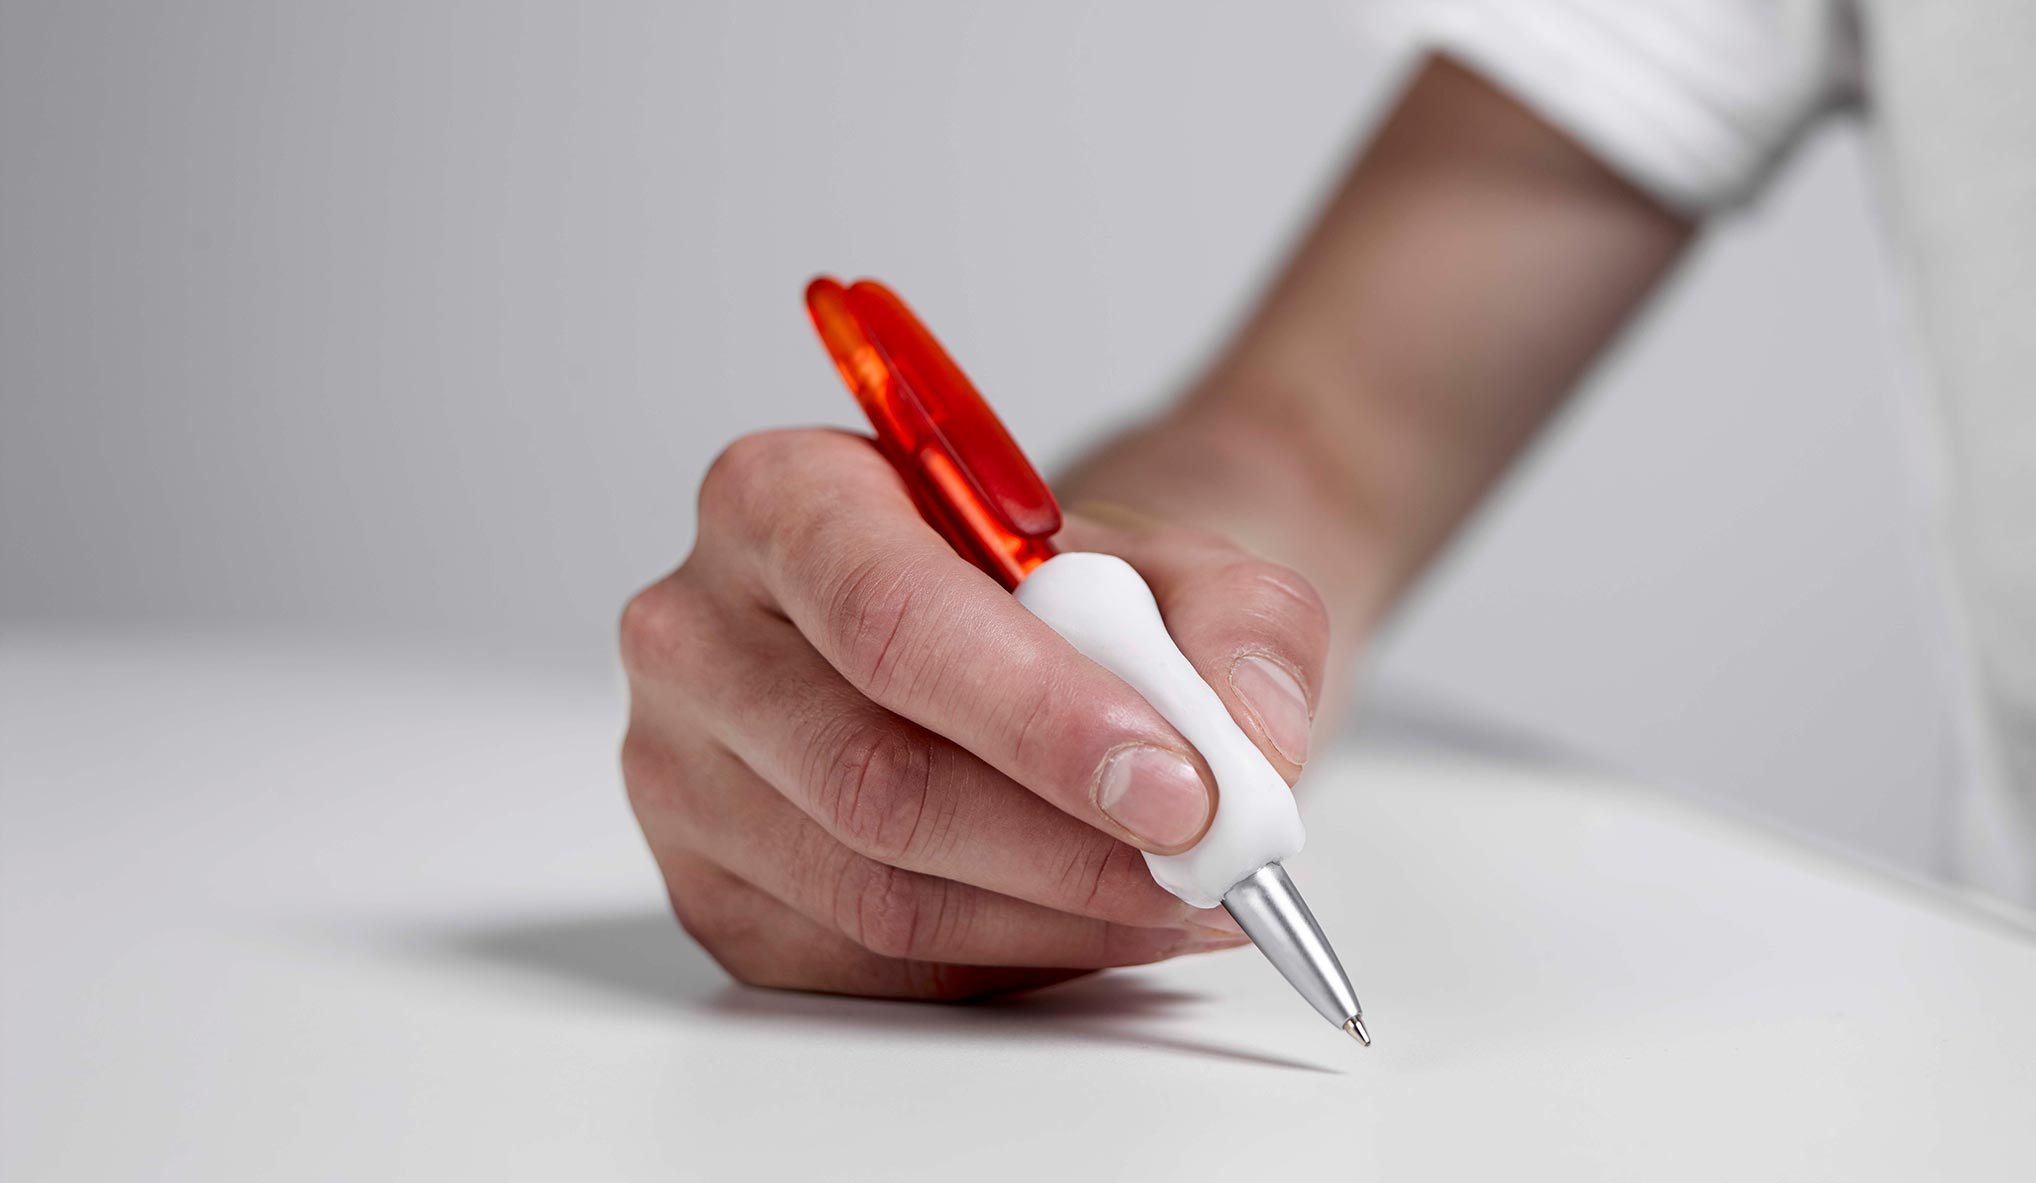 A hand holding a pen with a grip in Allfit.